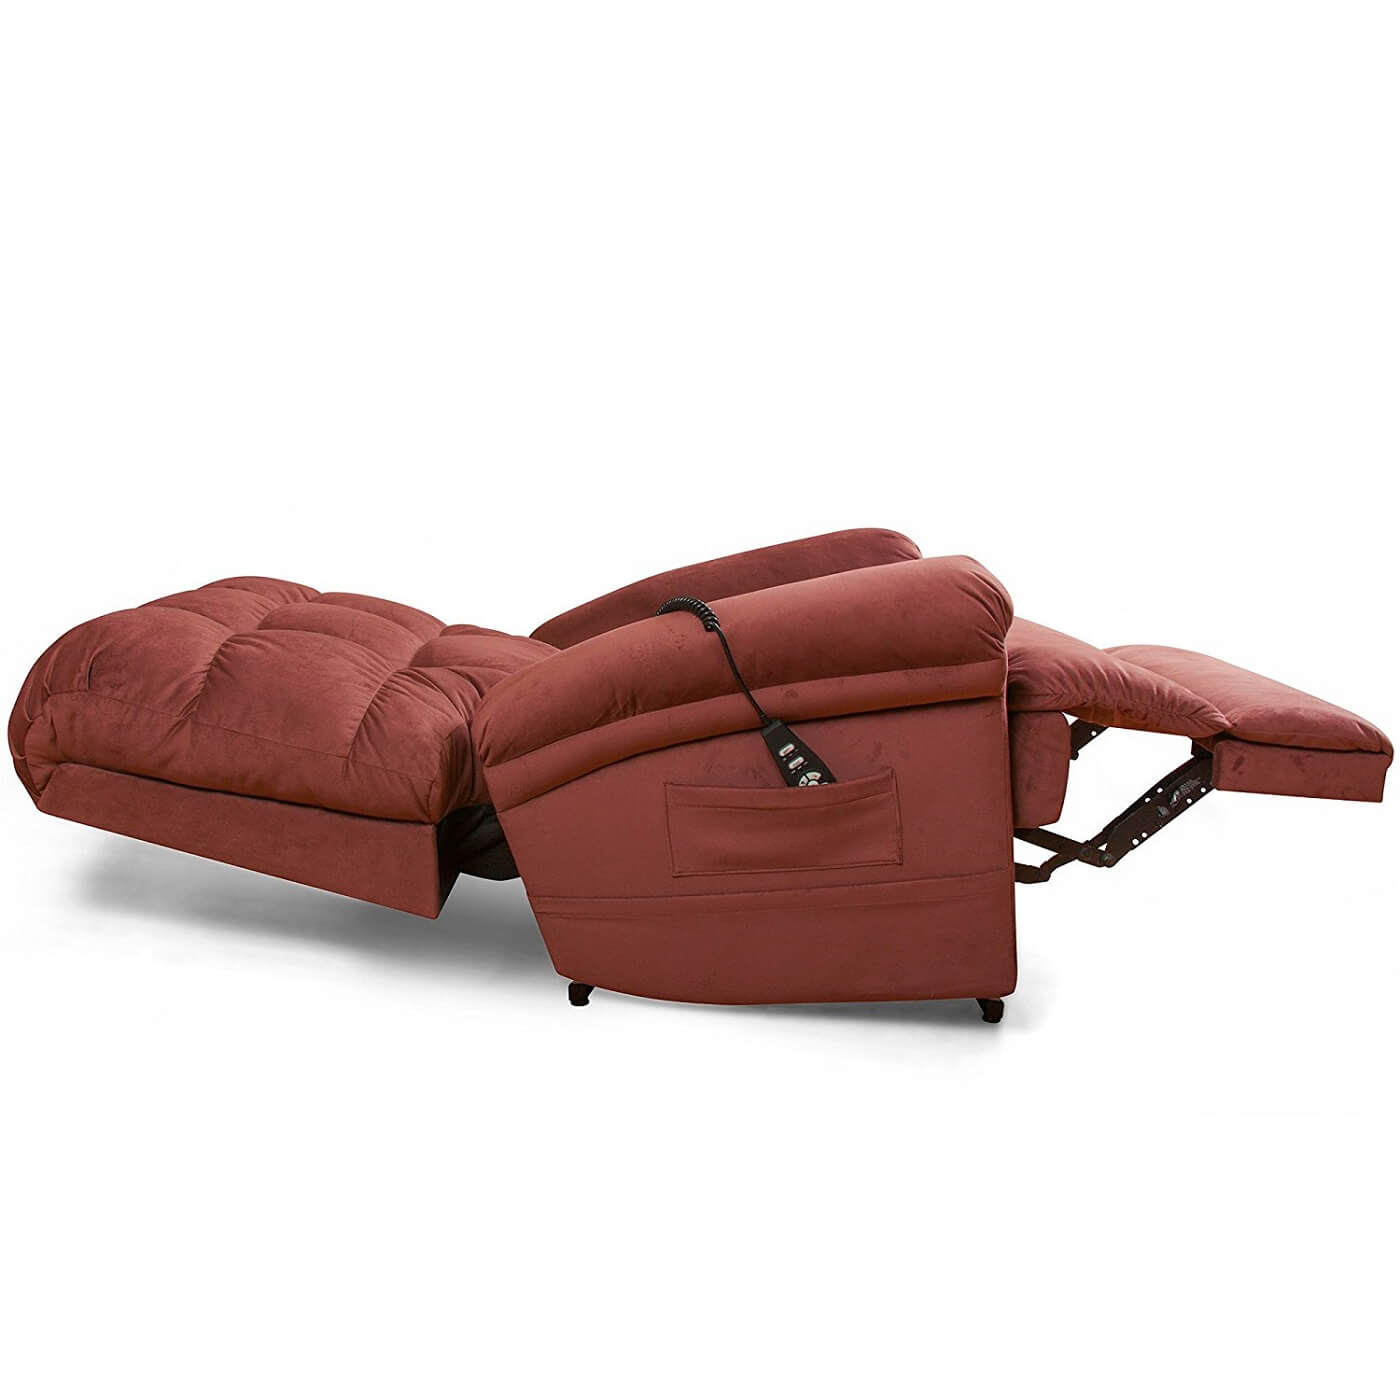 The Perfect Sleep Chair Reviews And Buying Guide In 2019